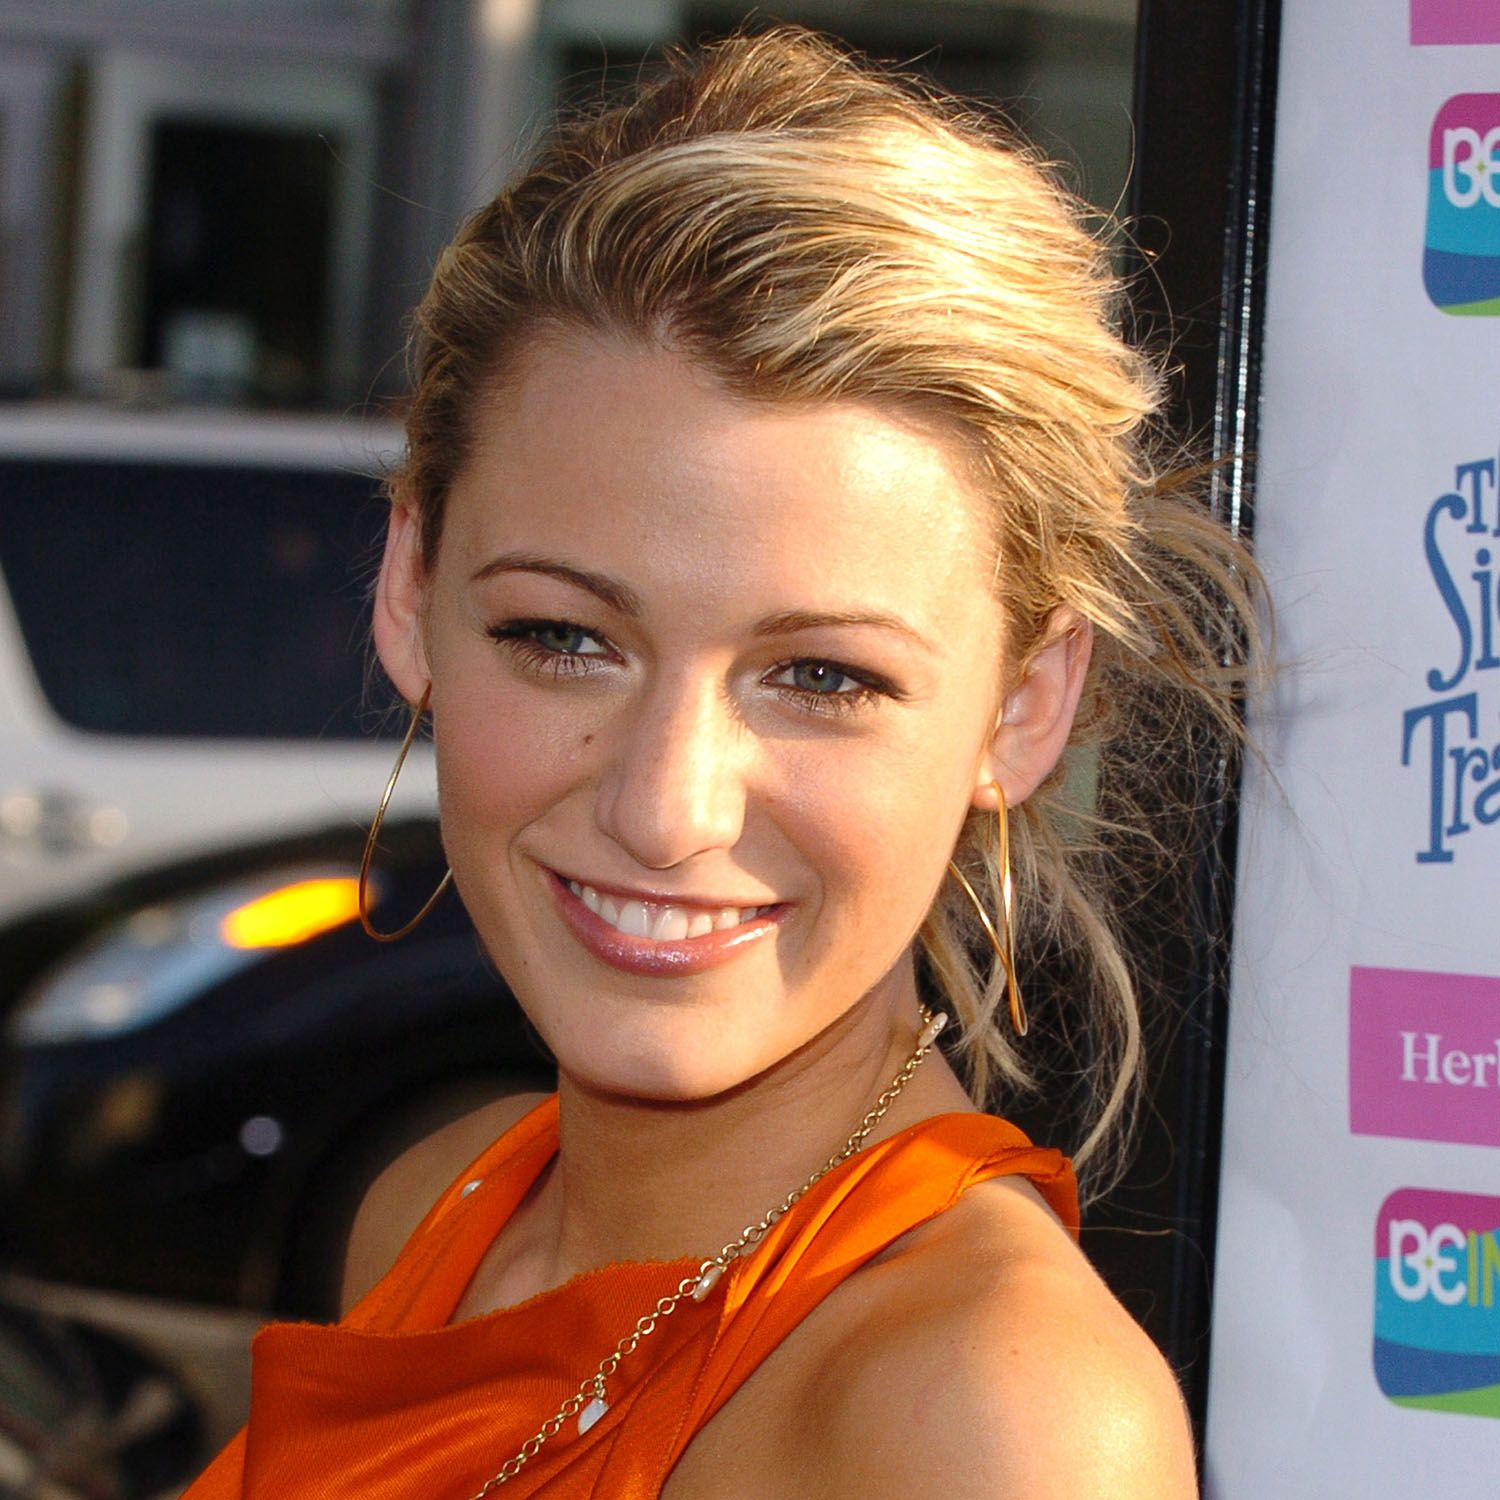 Blake Lively at the Grauman's Chinese Theatre in Hollywood, California (Photo by Steve Granitz/WireImage)